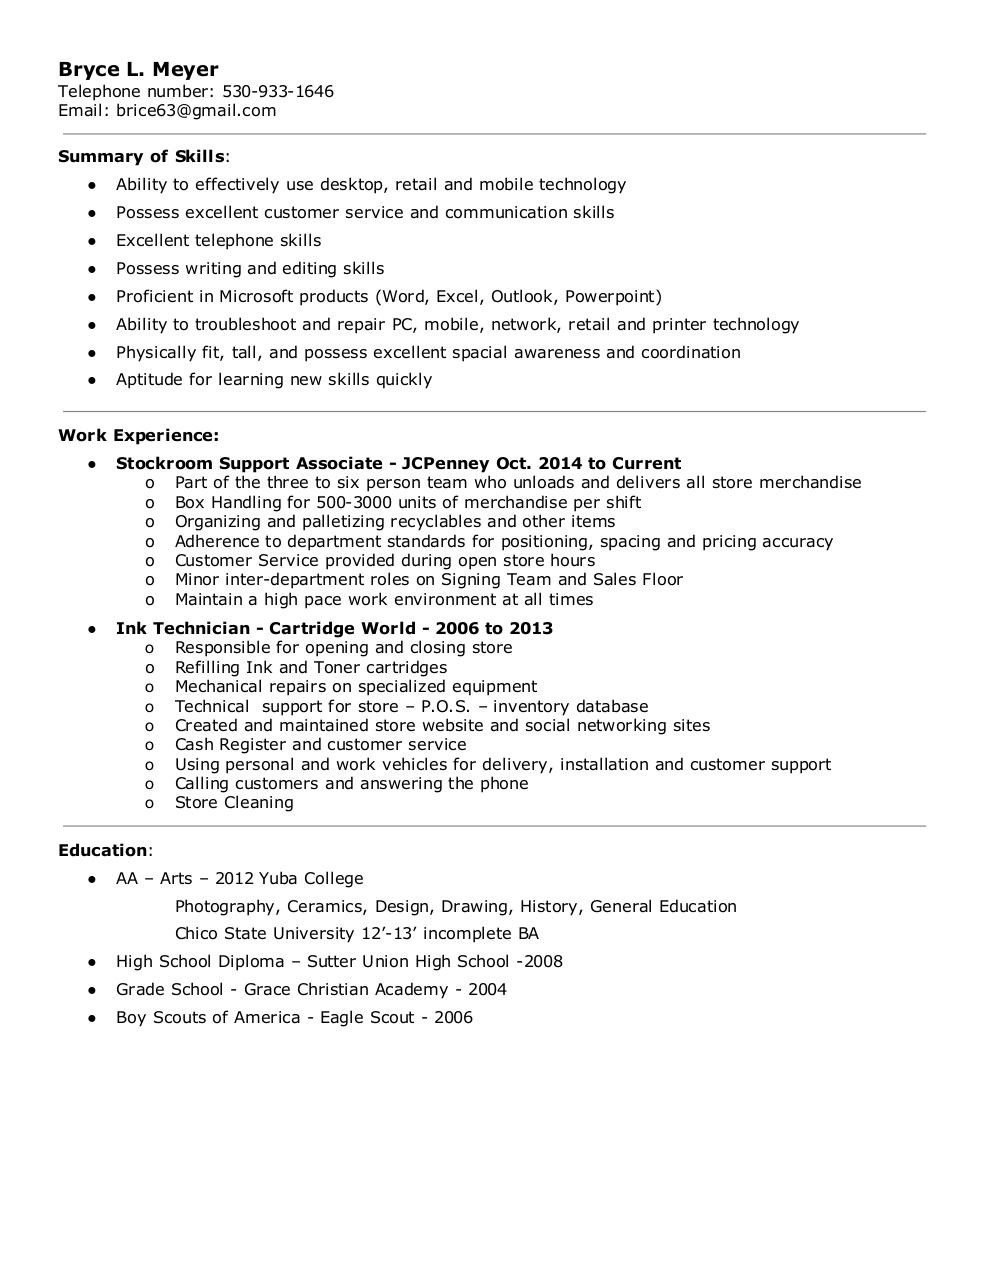 resume pdf pdf archive report spam or adult content